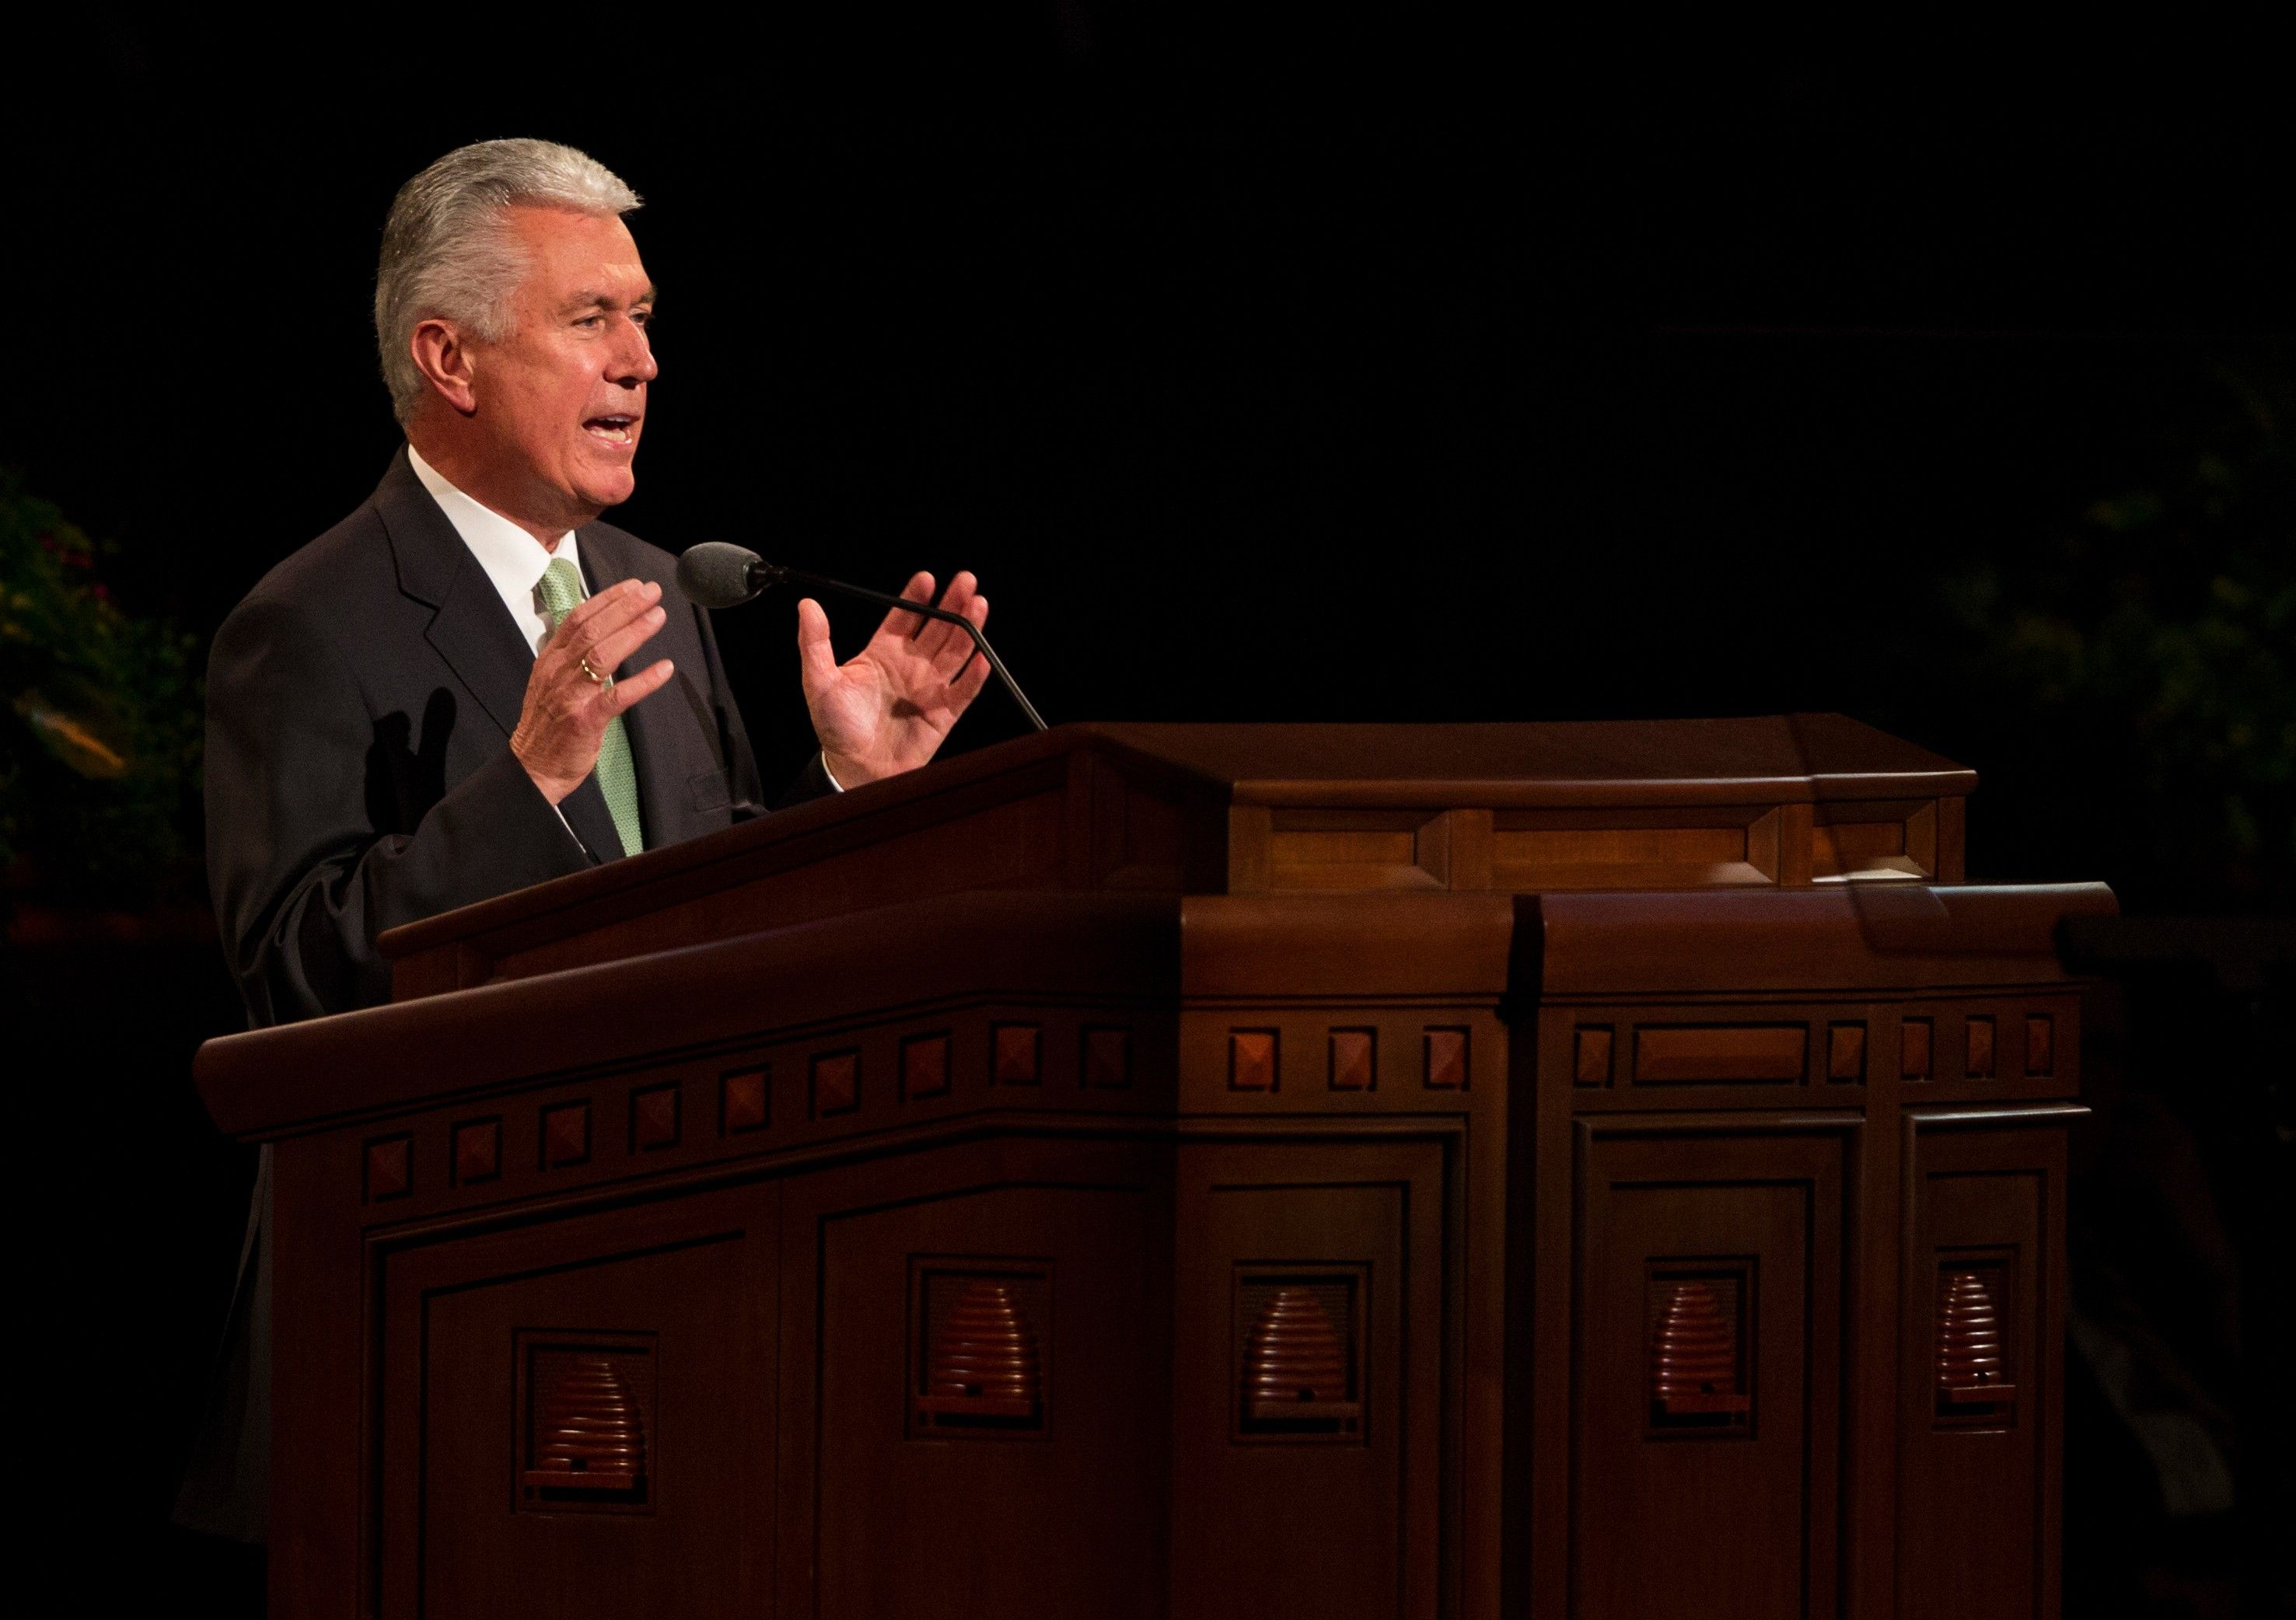 Dieter F. Uchtdorf speaking to the congregation in the Conference Center.